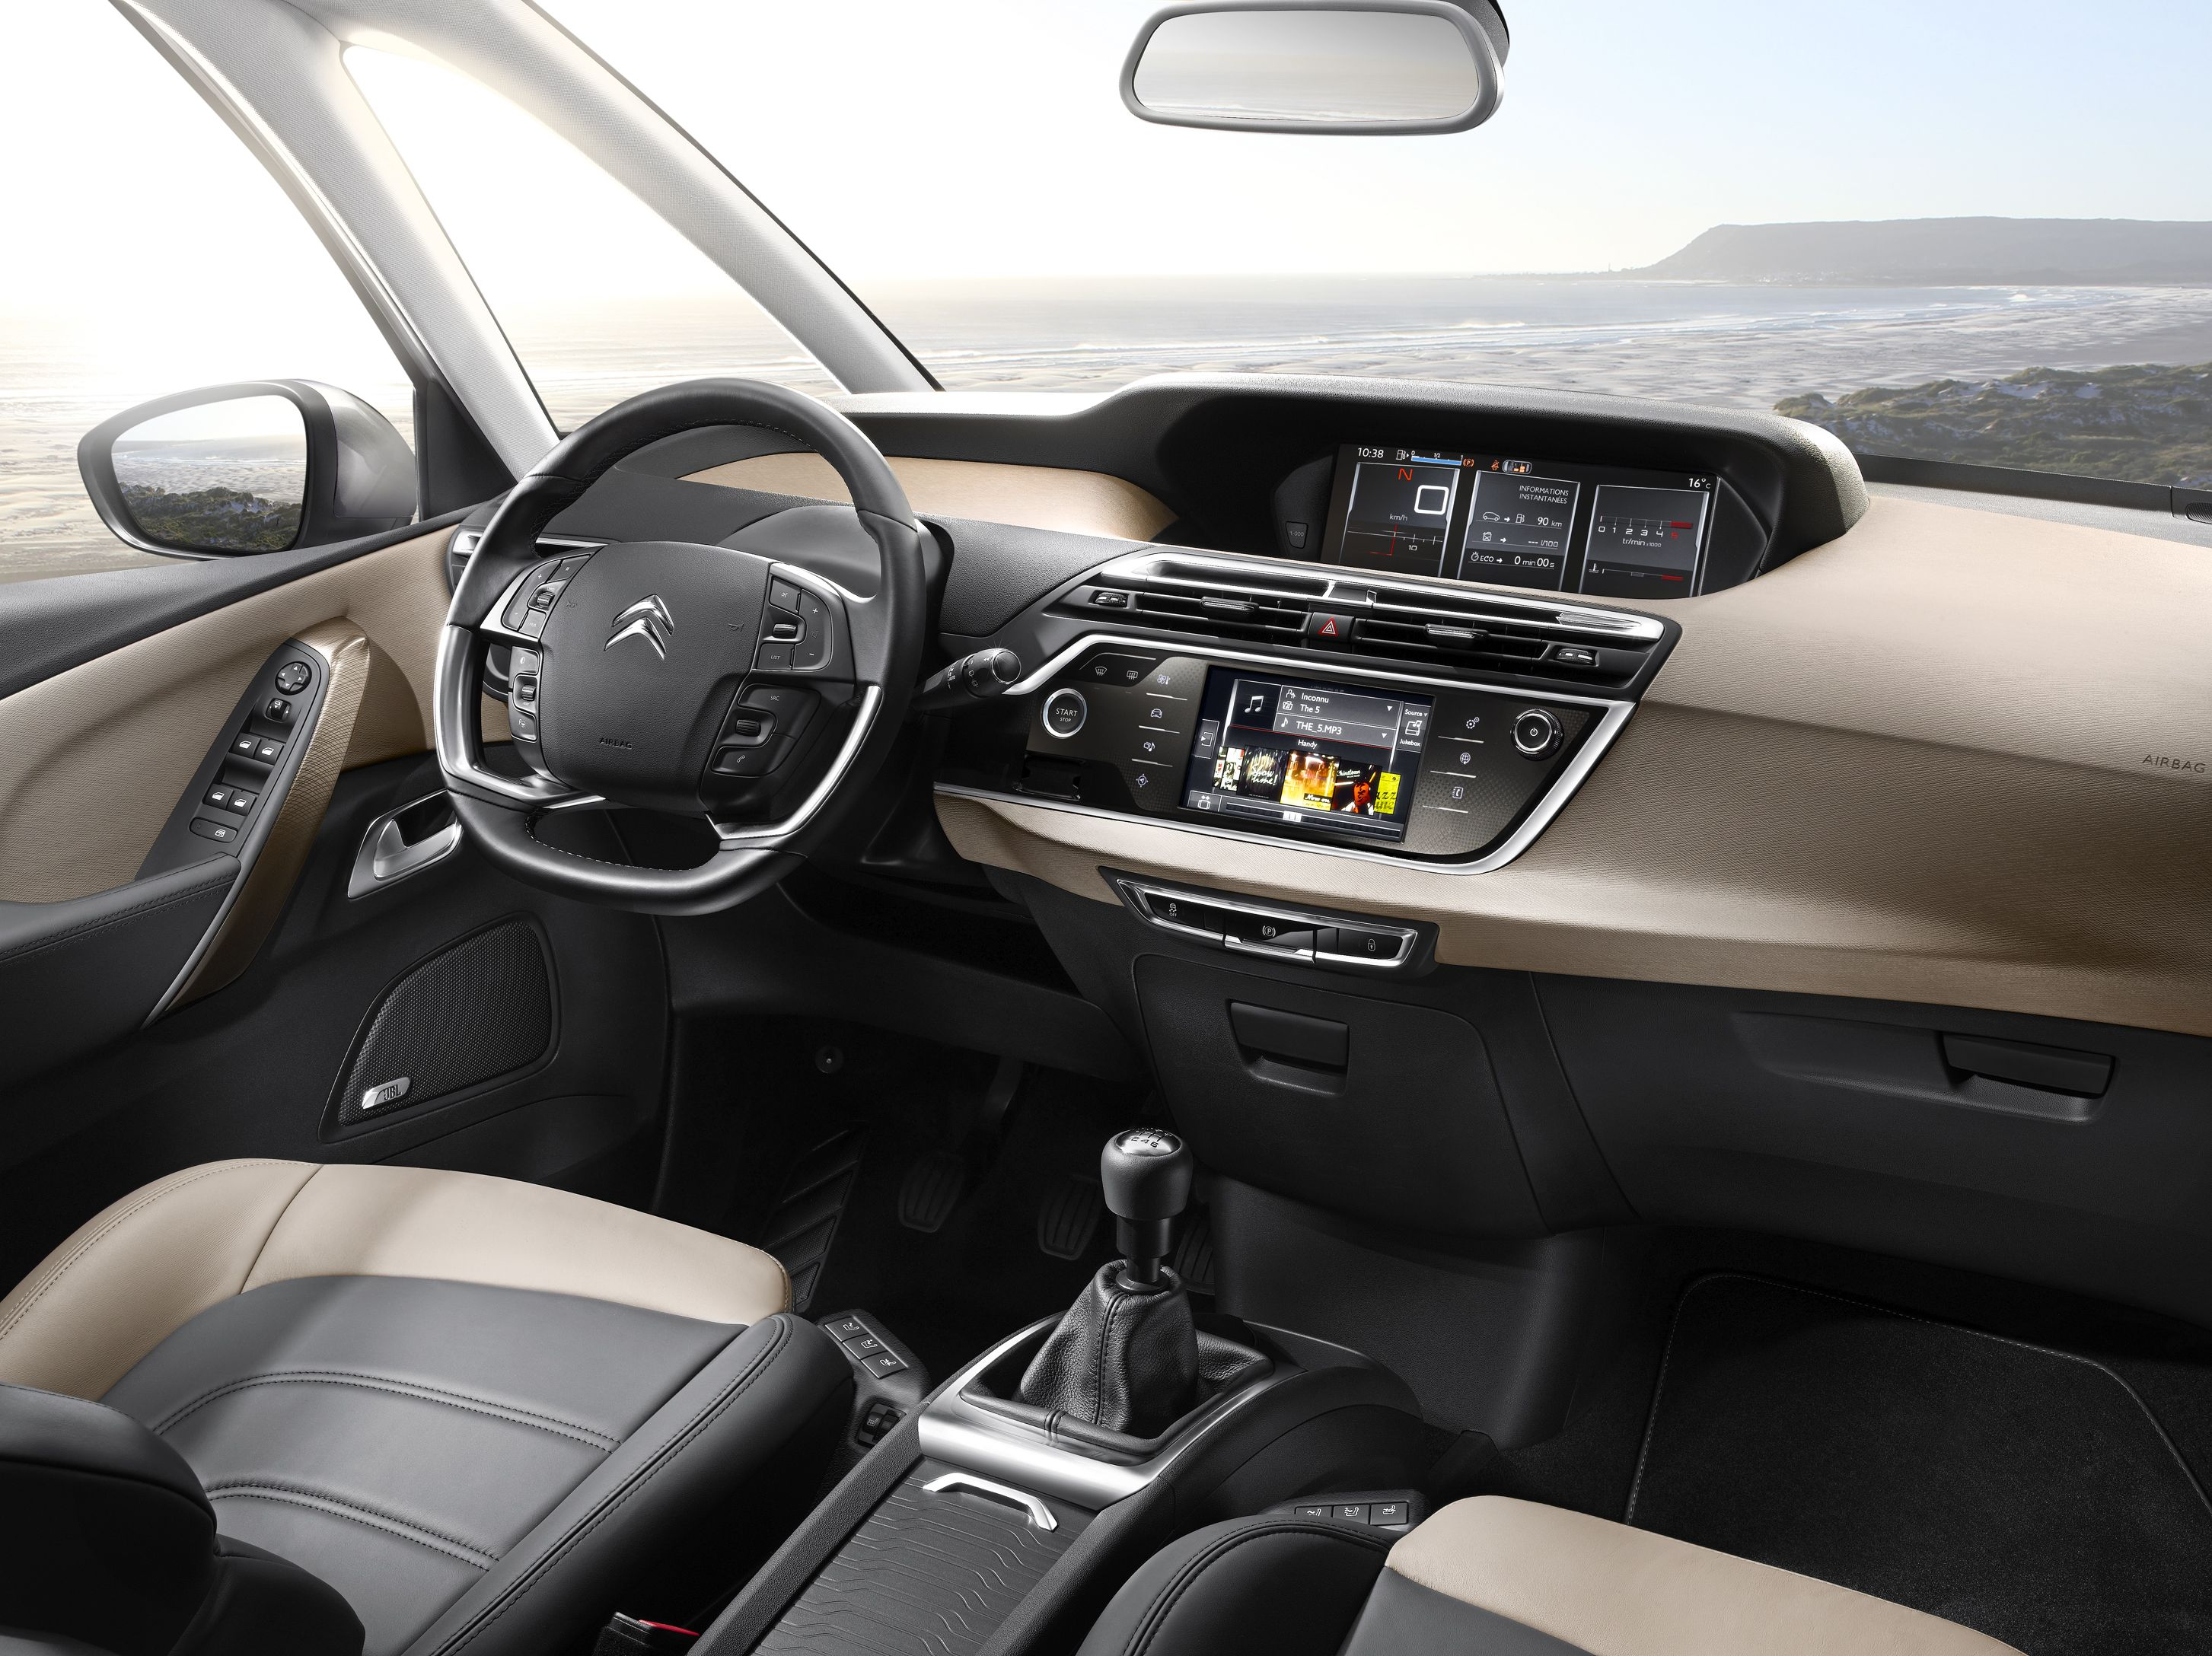 Interior of the new Citroën C4 Picasso. | C4 | Pinterest